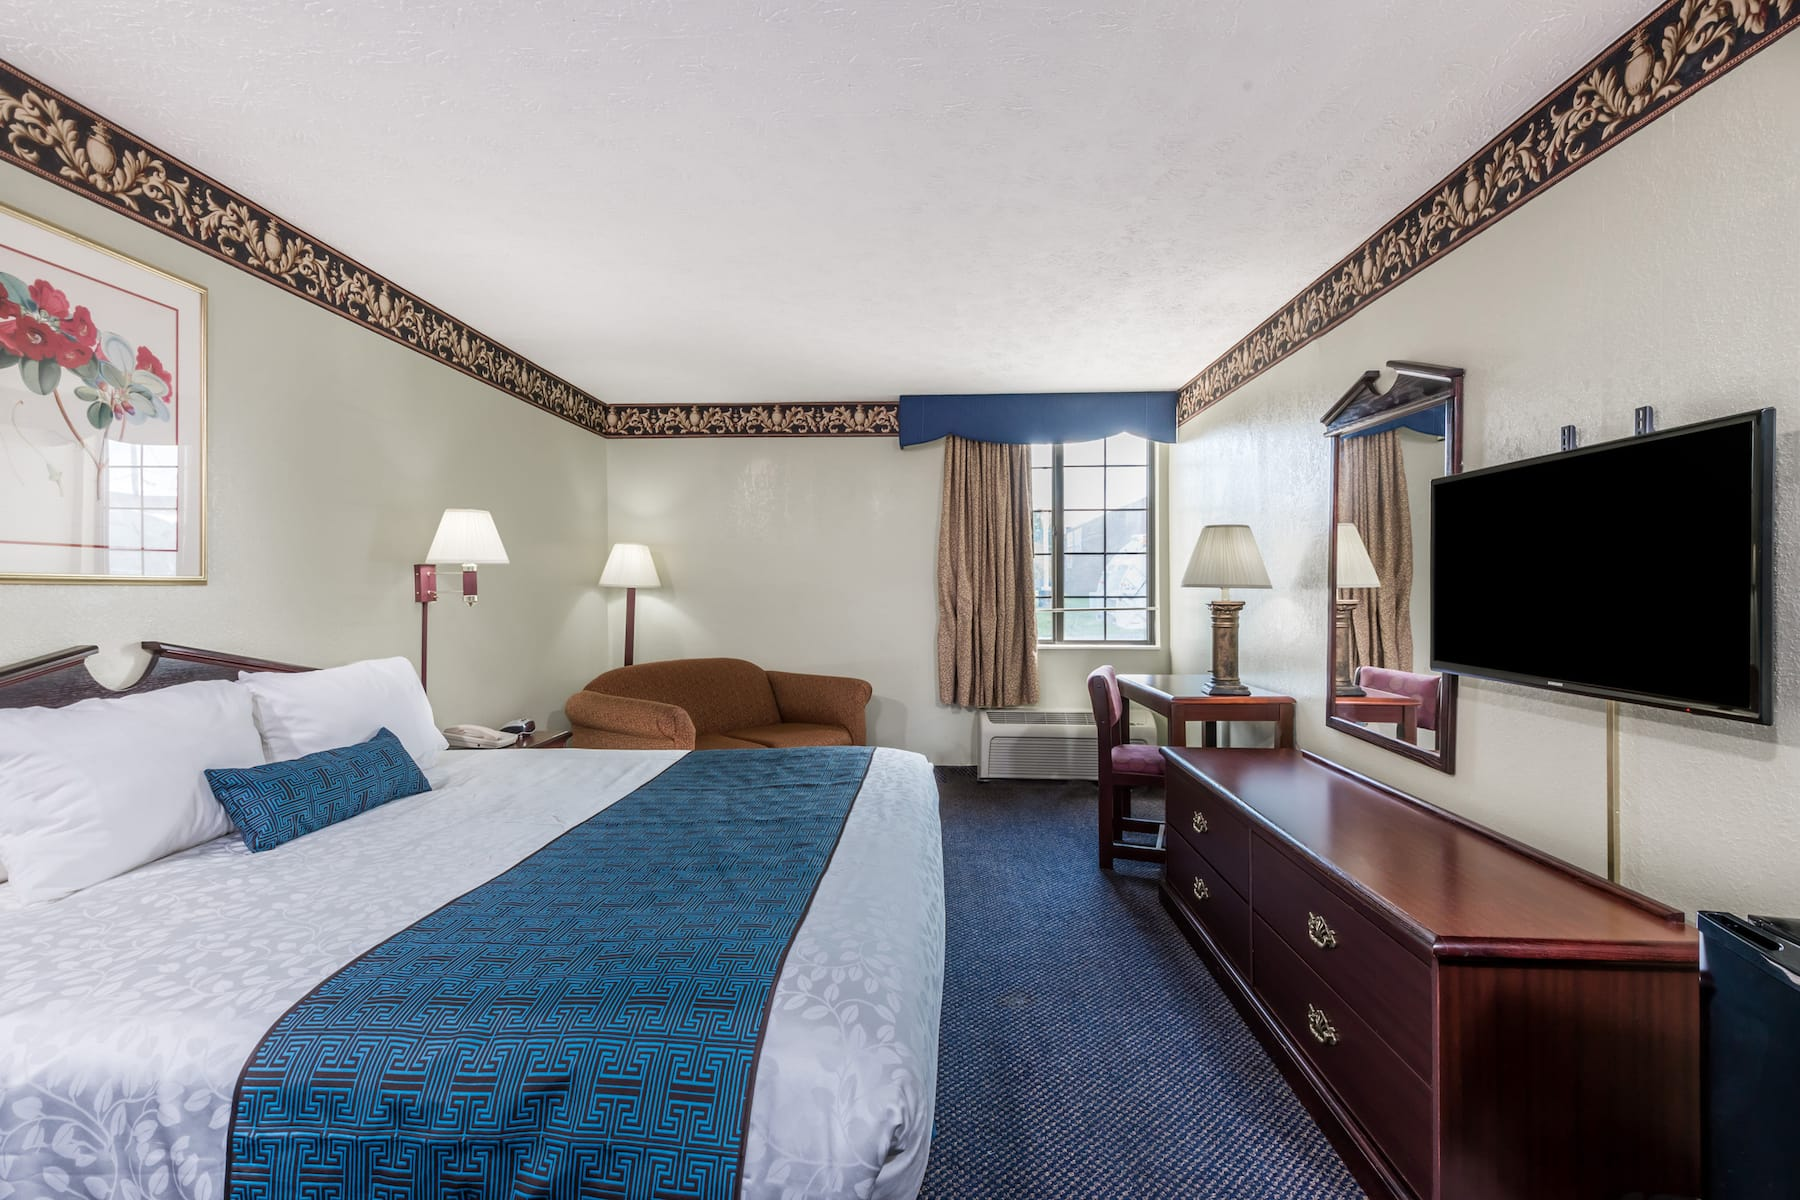 Days Inn Amp Suites By Wyndham Youngstown Girard Ohio